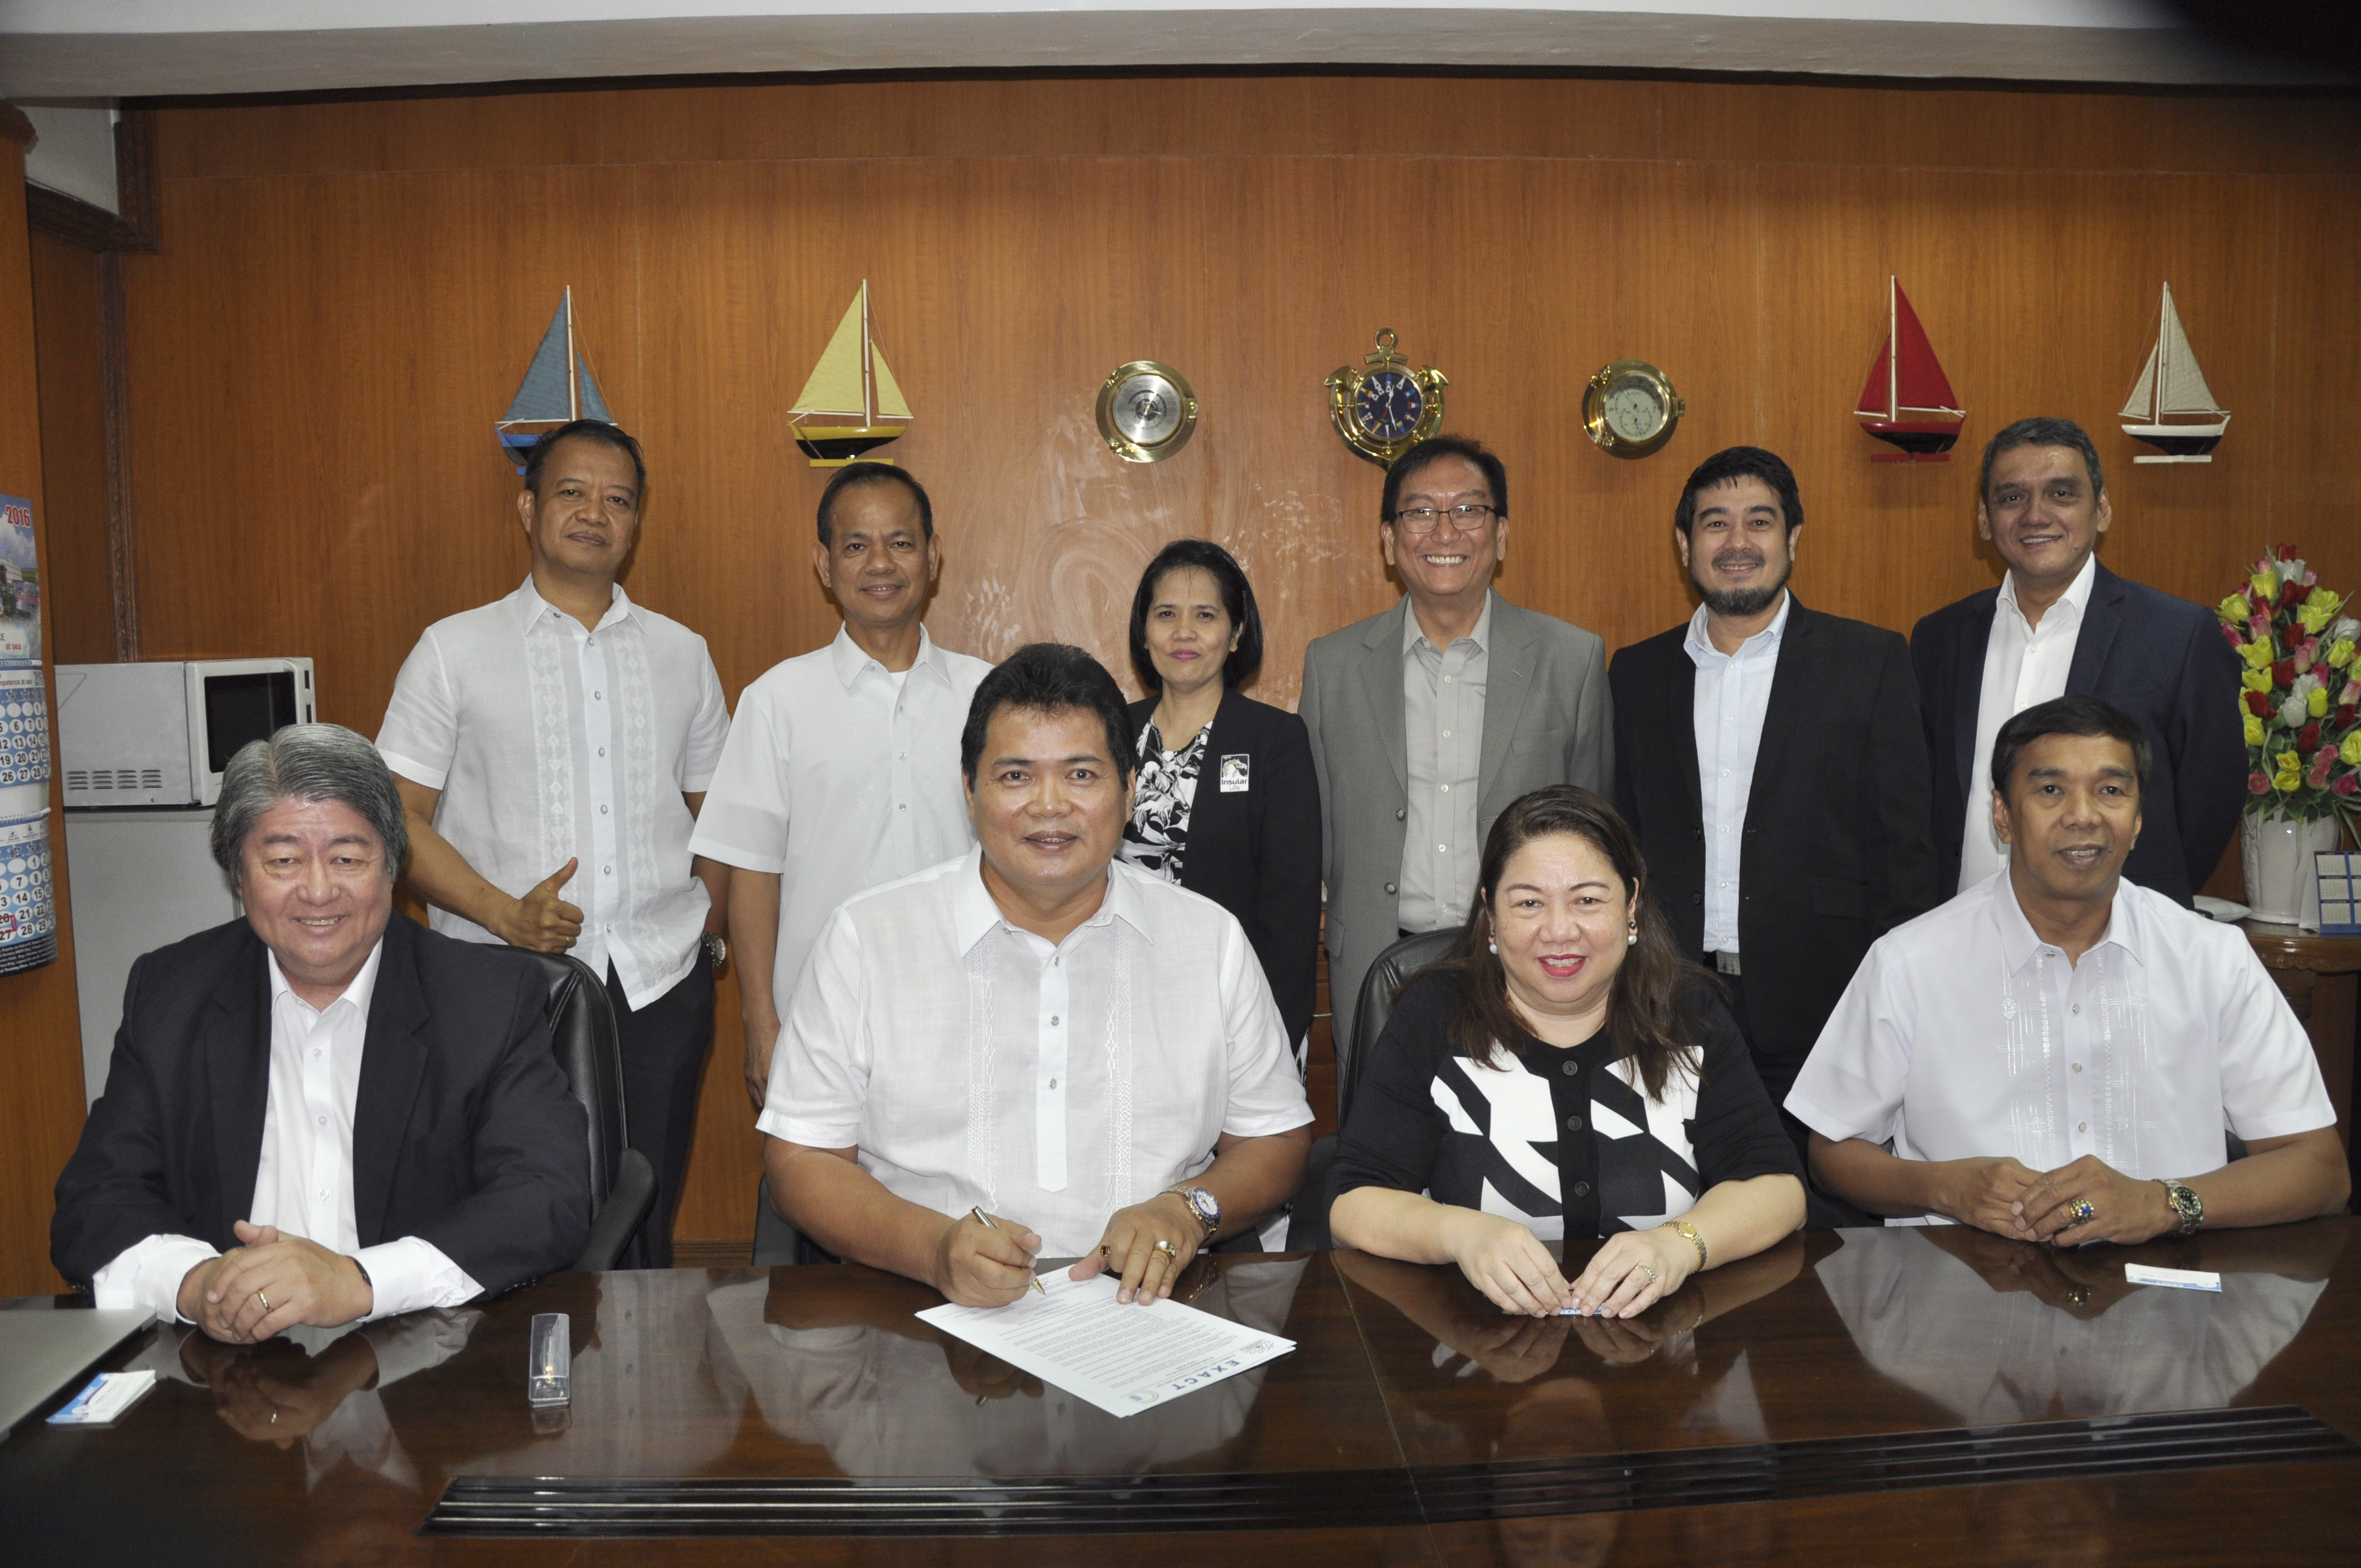 Exact insular life contract signing